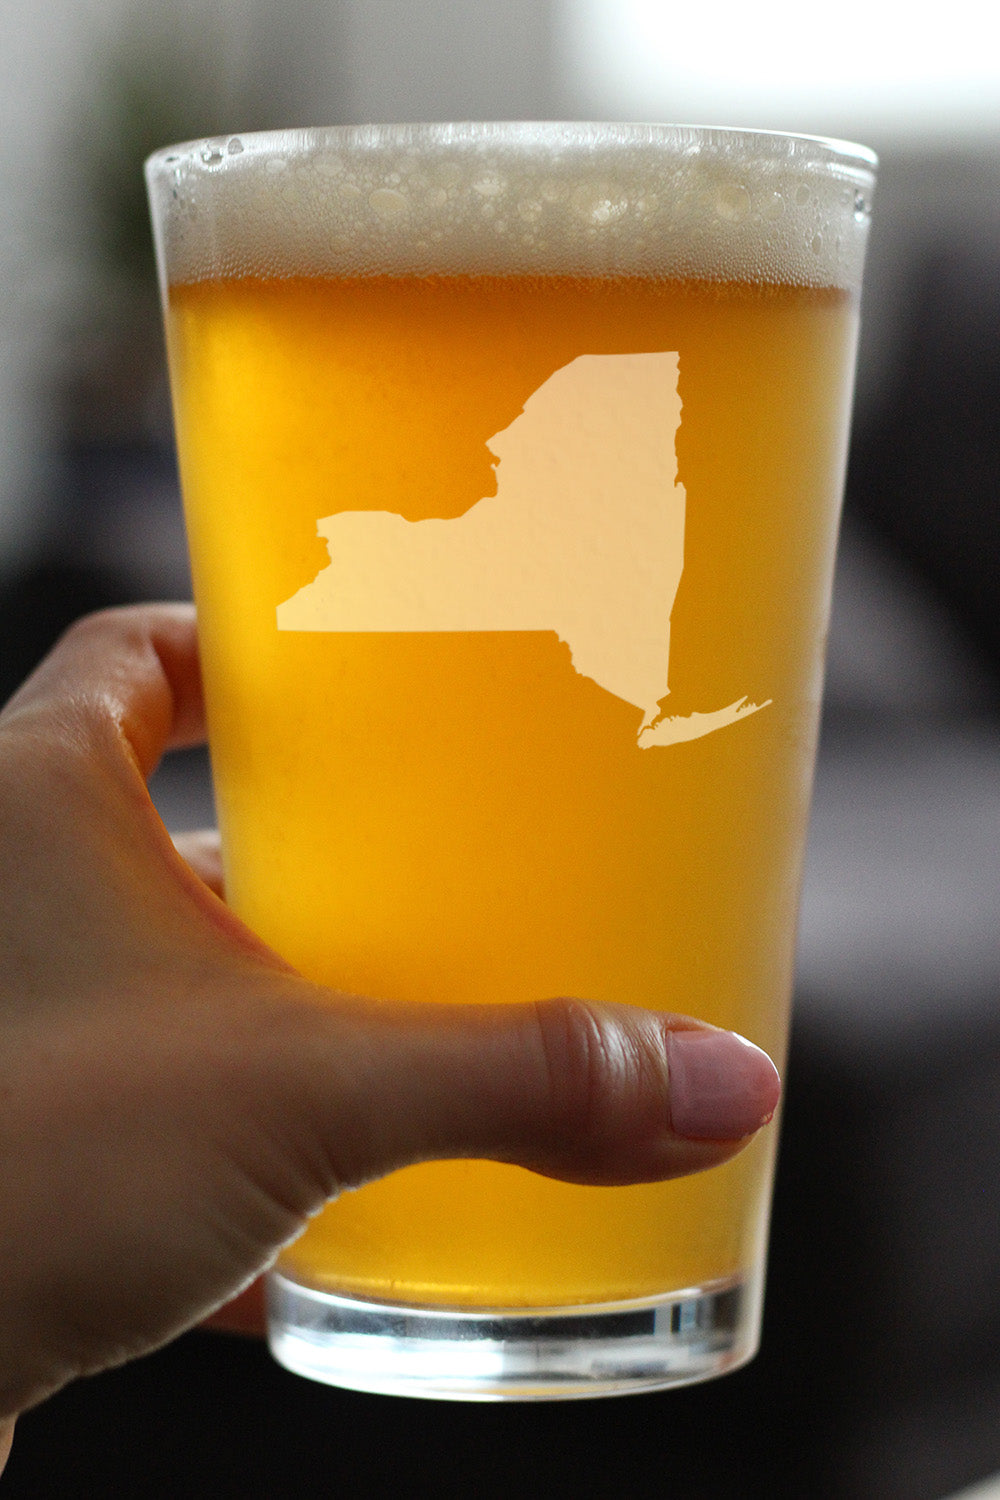 State of New York - 16 Ounce Pint Glass